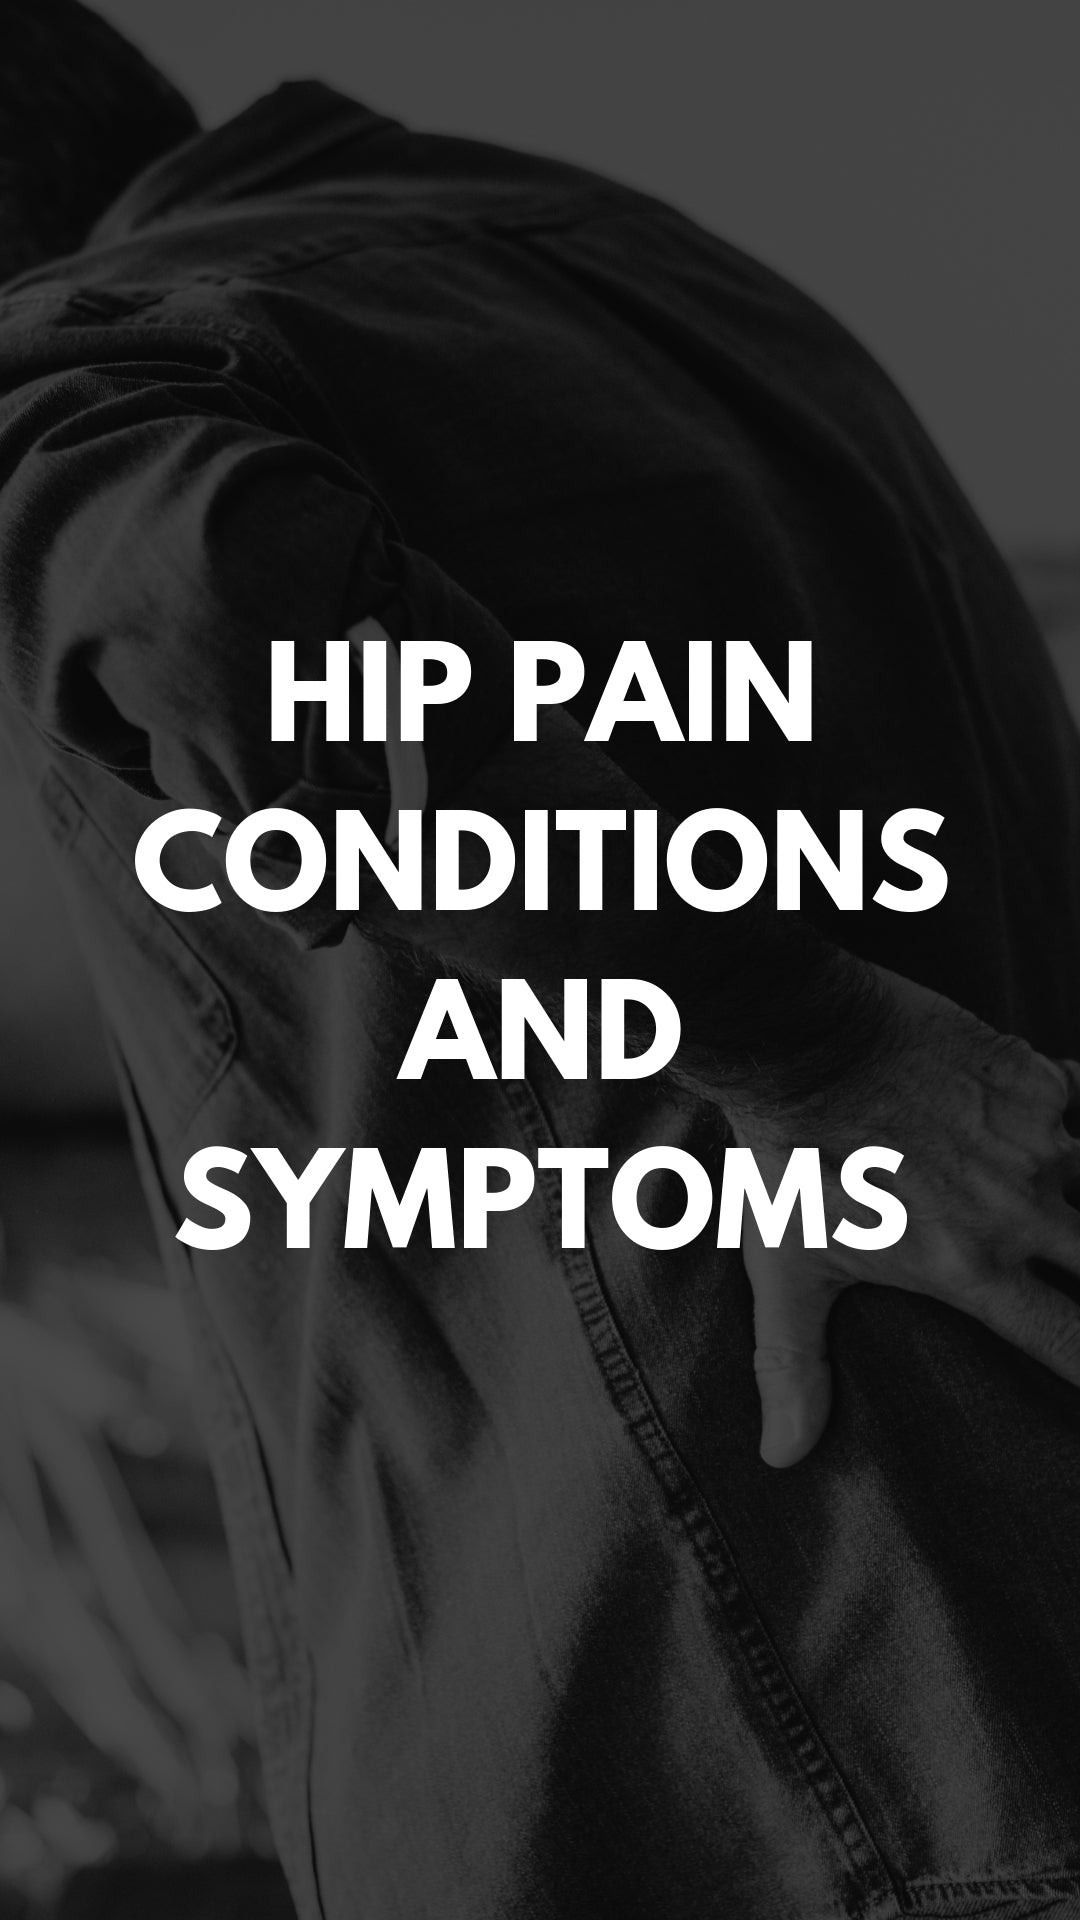 Hip Pain Conditions and Symptoms